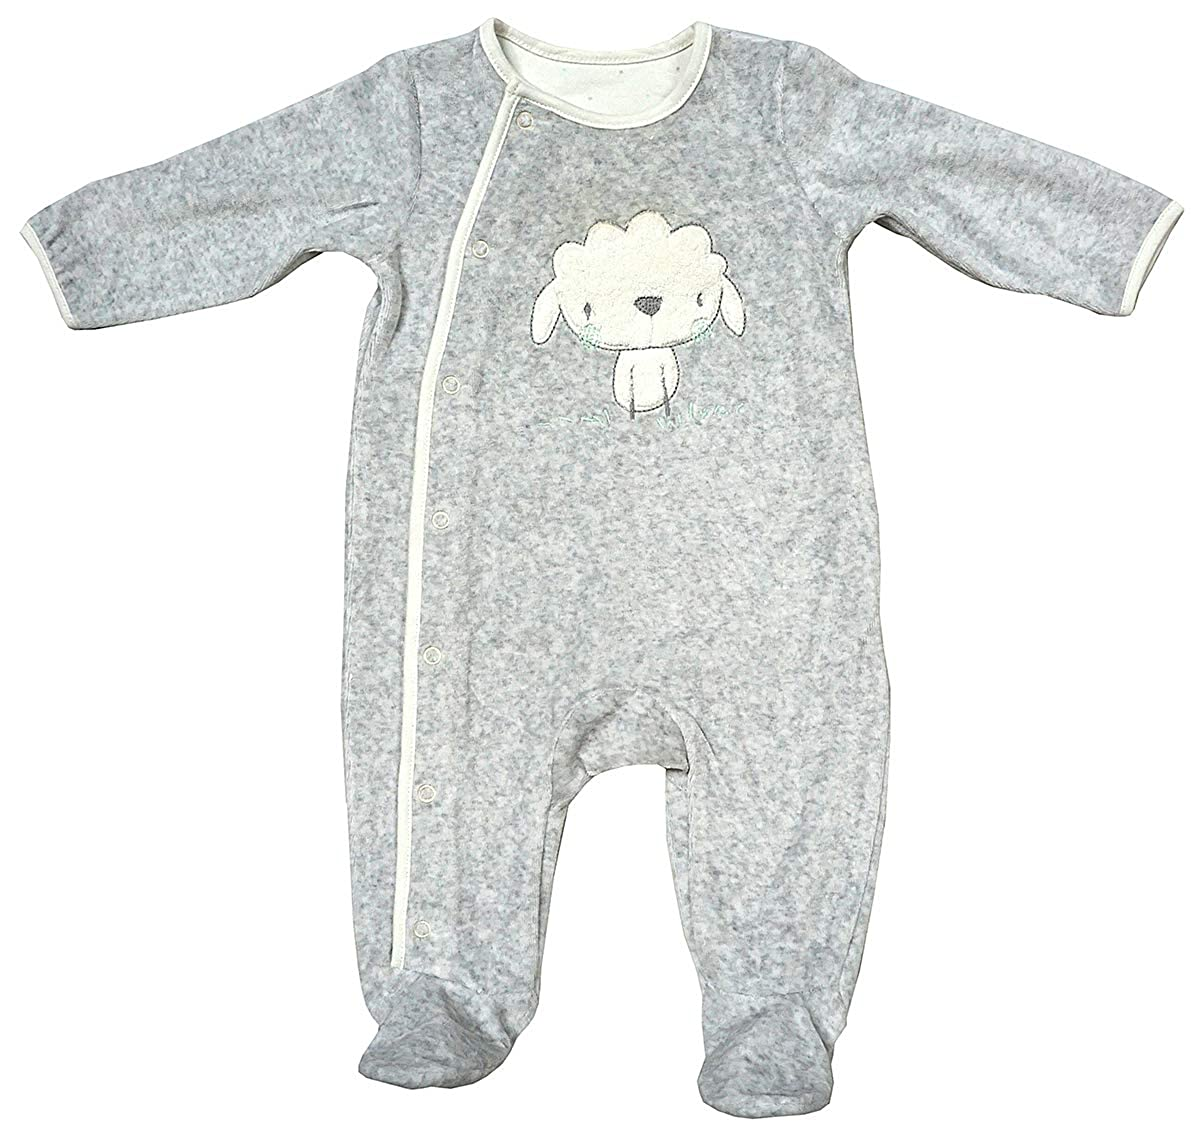 Baby Vroom Motor Car Sleepsuit Romper /& Hat Set Tiny Early Baby to 9 Months